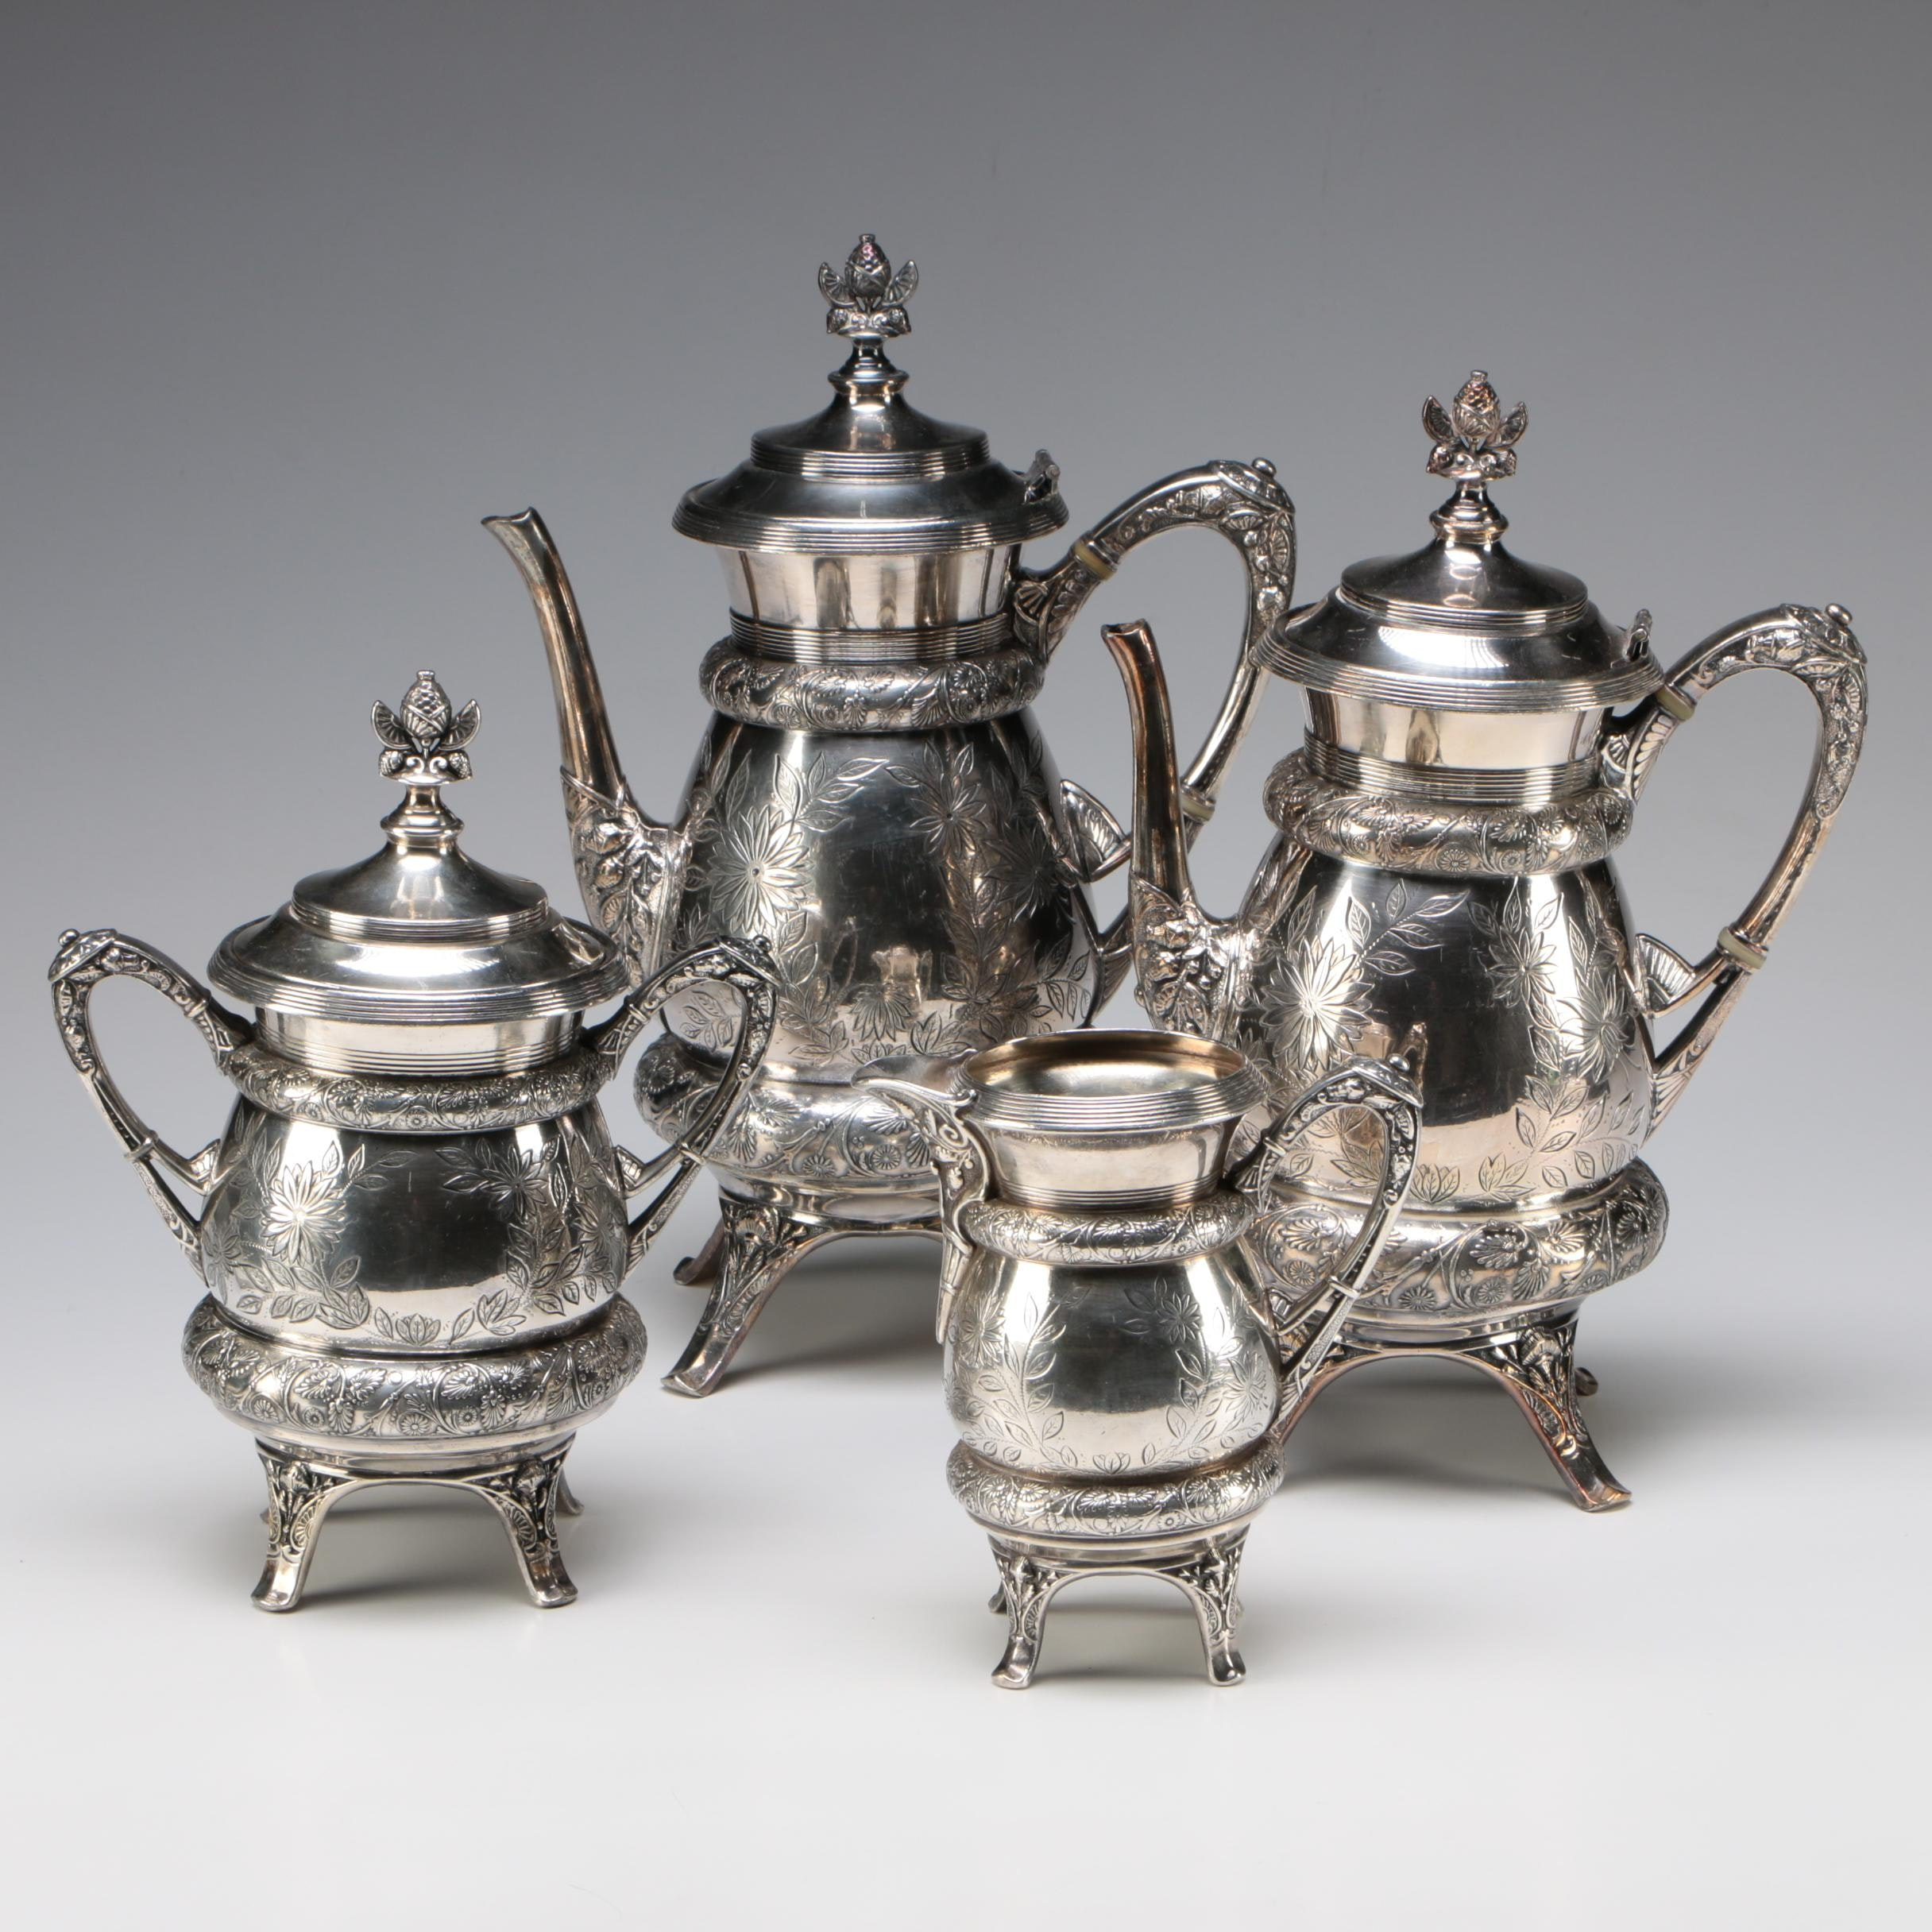 Acme Silver Company Chased Silver Plate Tea Service, 1884-1893